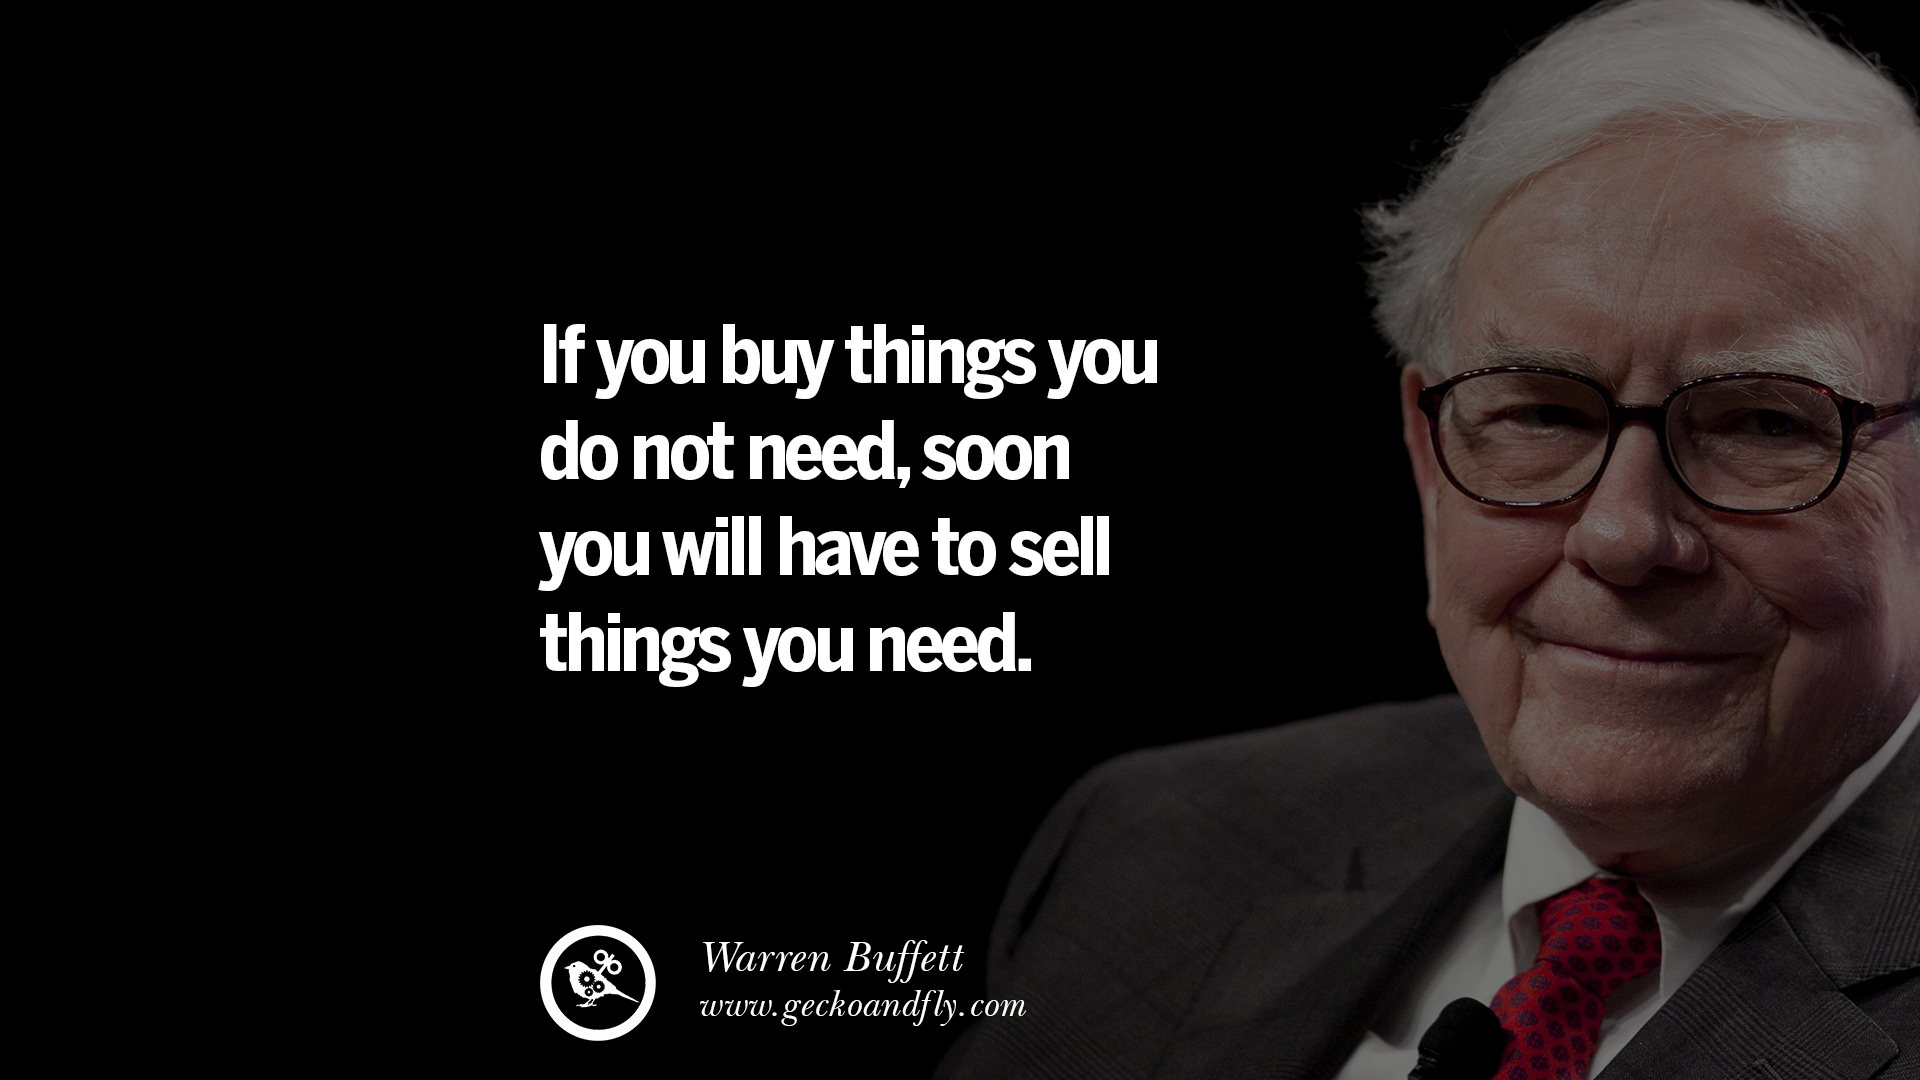 Greatest Quotes Of Life 12 Best Warren Buffett Quotes On Investment Life And Making Money